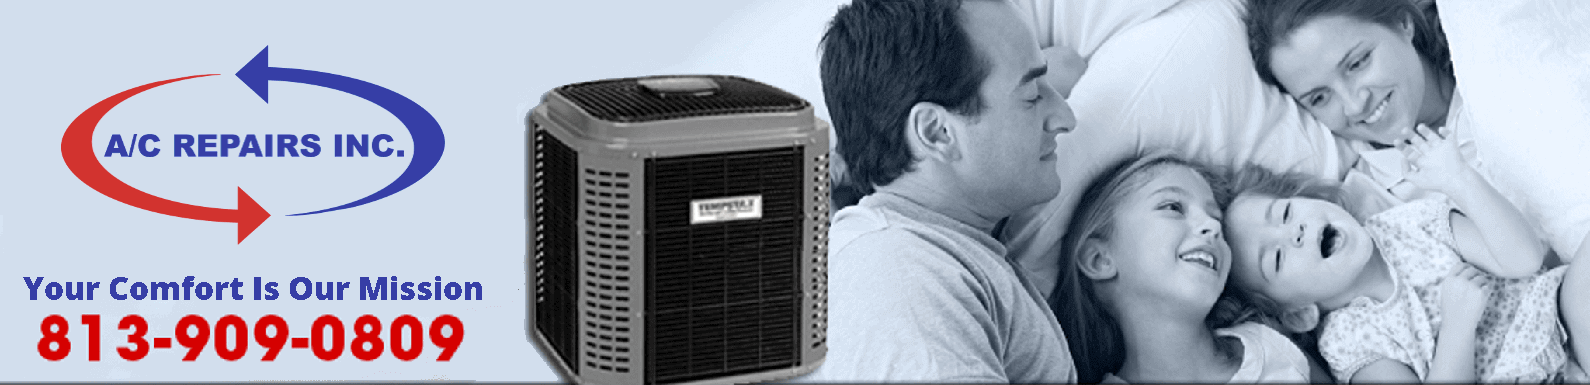 AC Repair Lutz, Florida